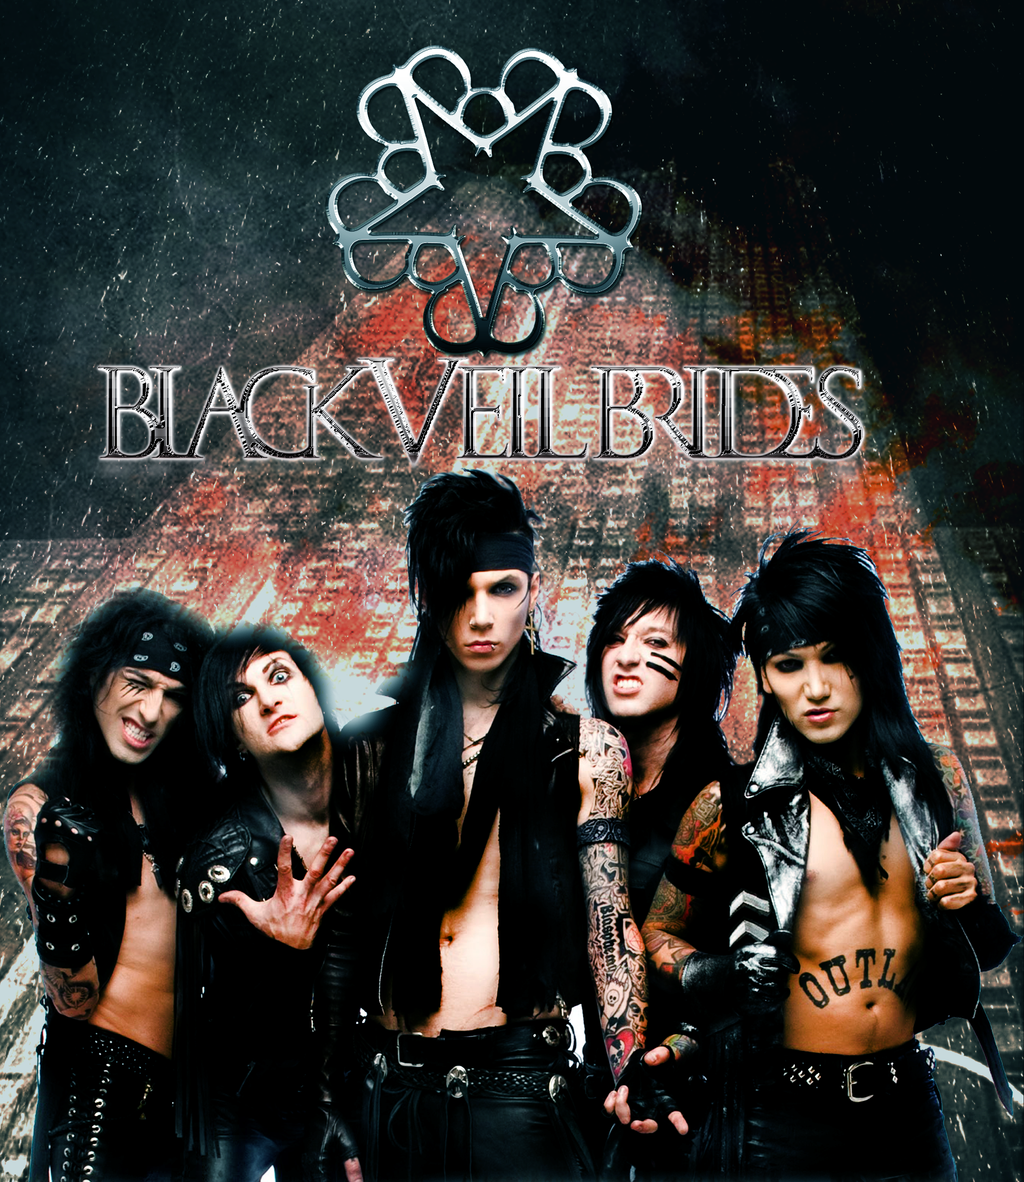 Black Veil Brides Wallpaper by finallyakilljoy on DeviantArt